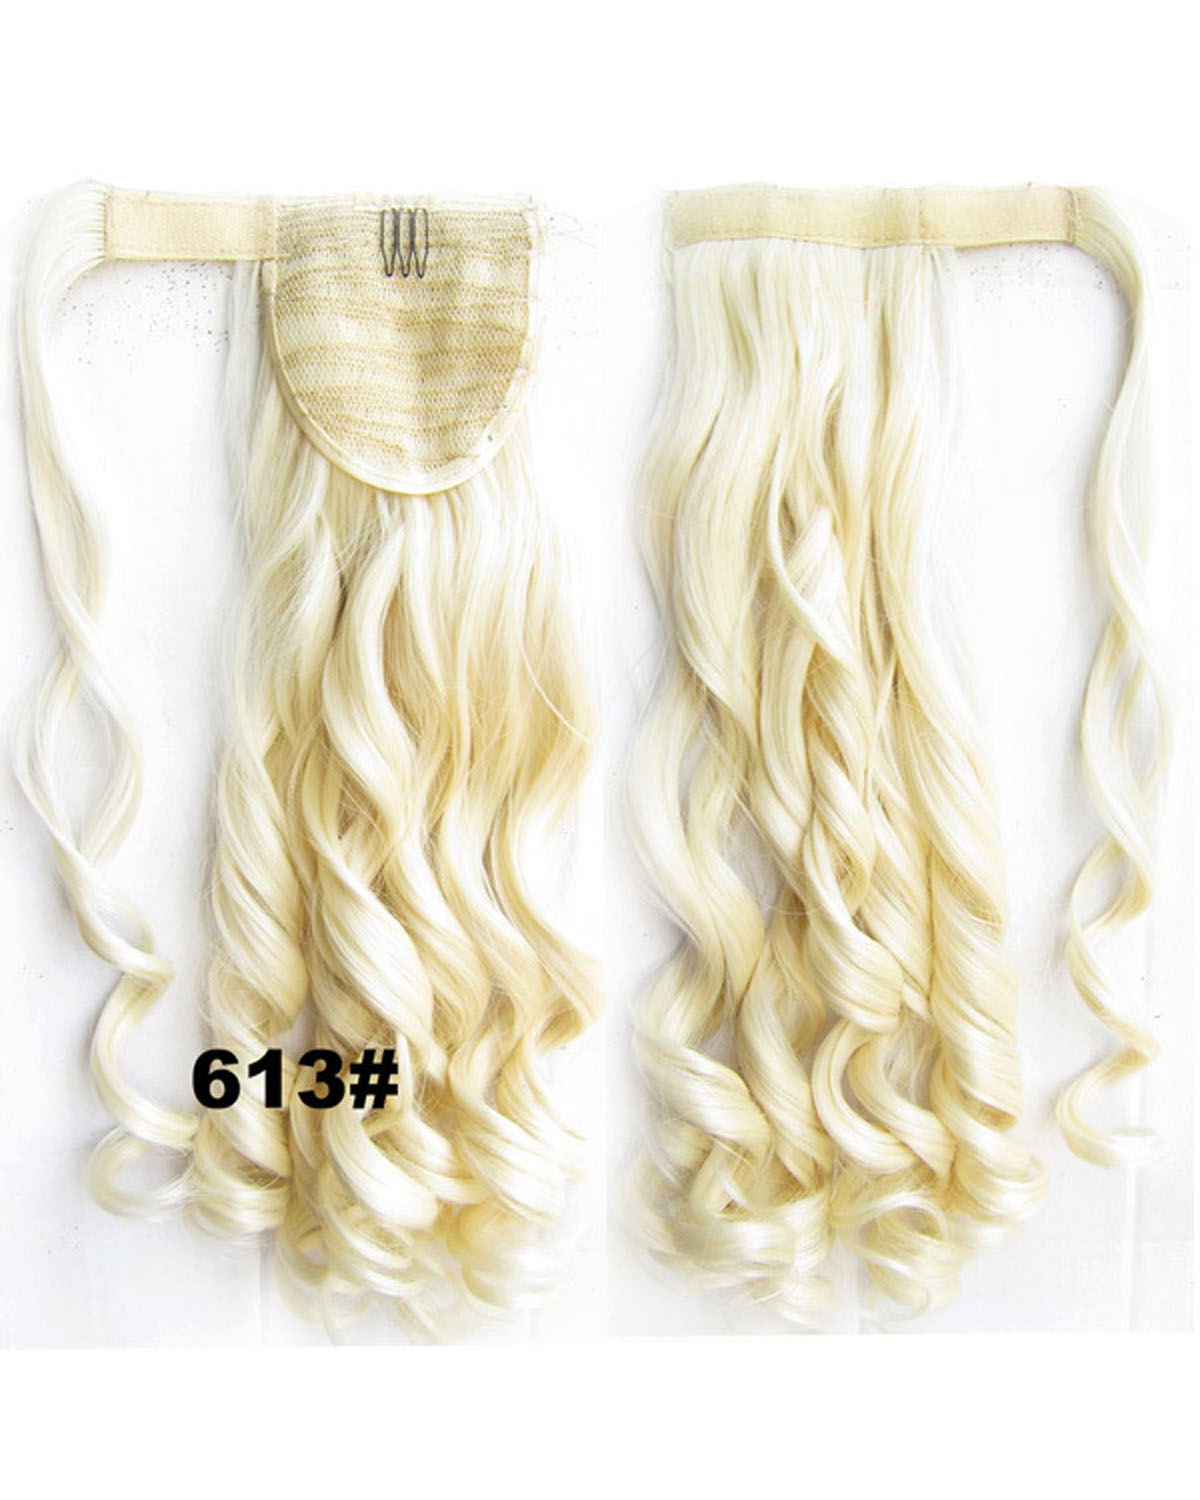 22 Inch Lady Absorbing Curly and Long Wrap Around Synthetic Hair Ponytail 613#